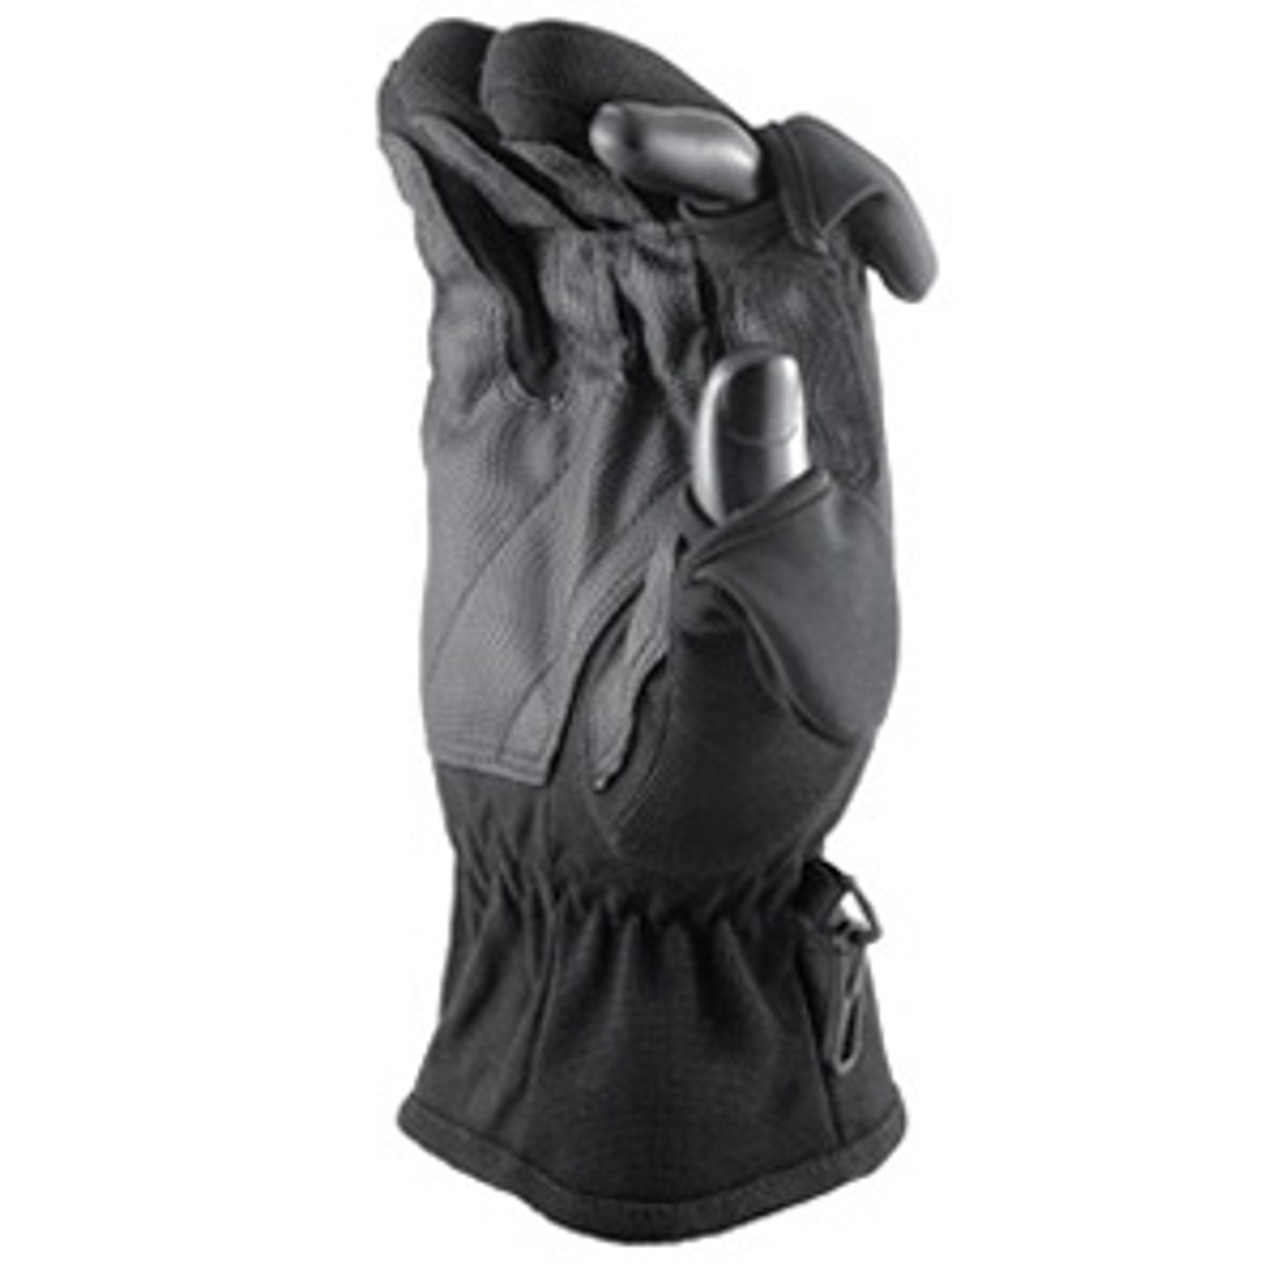 Optex Freehands Photo Gloves - Mens (Medium)